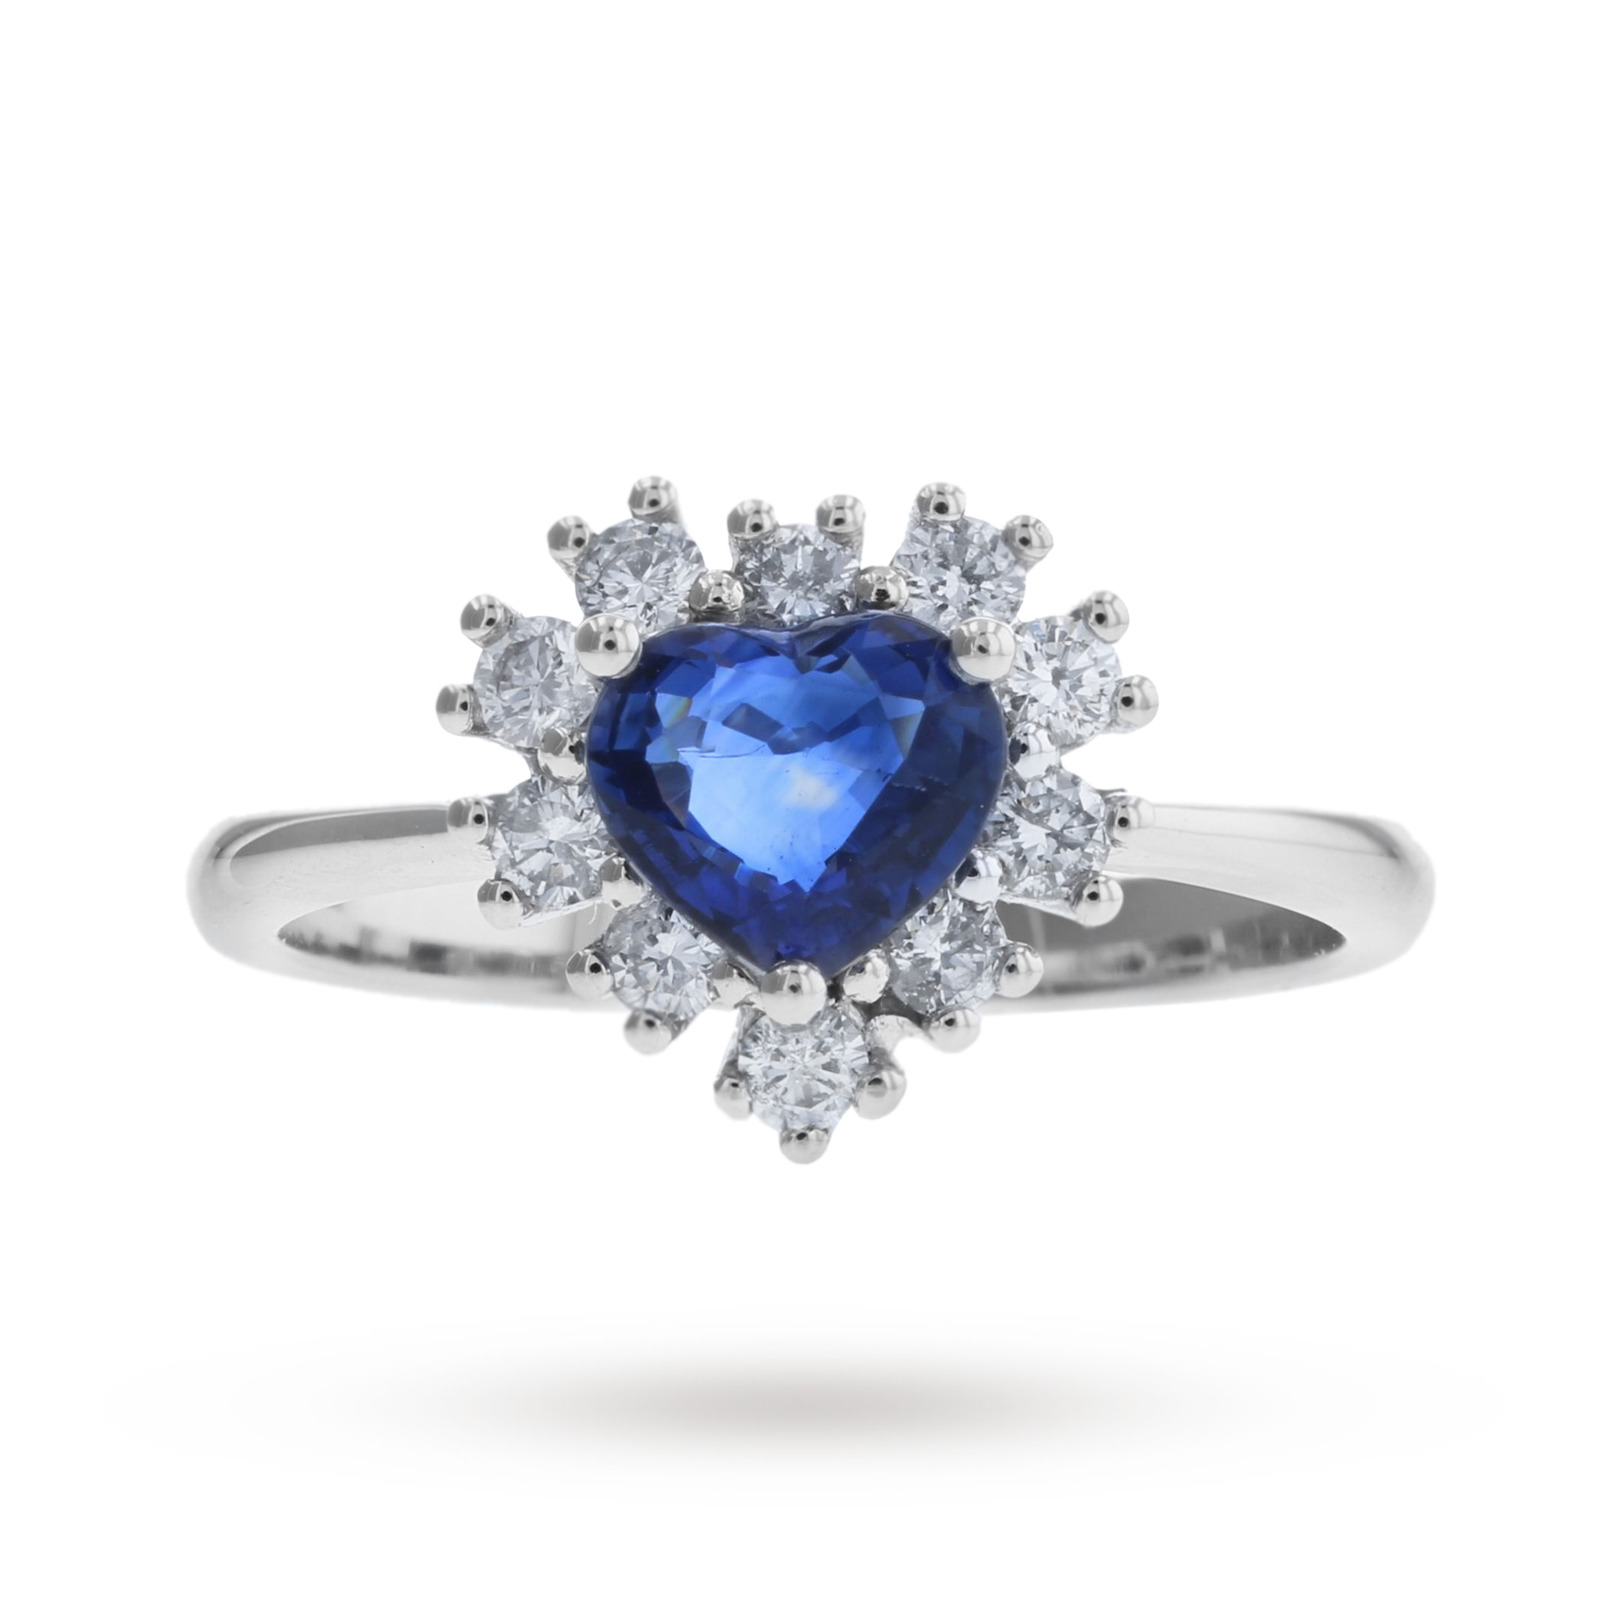 18 Carat White Gold Heart Shaped Sapphire and Diamond Ring